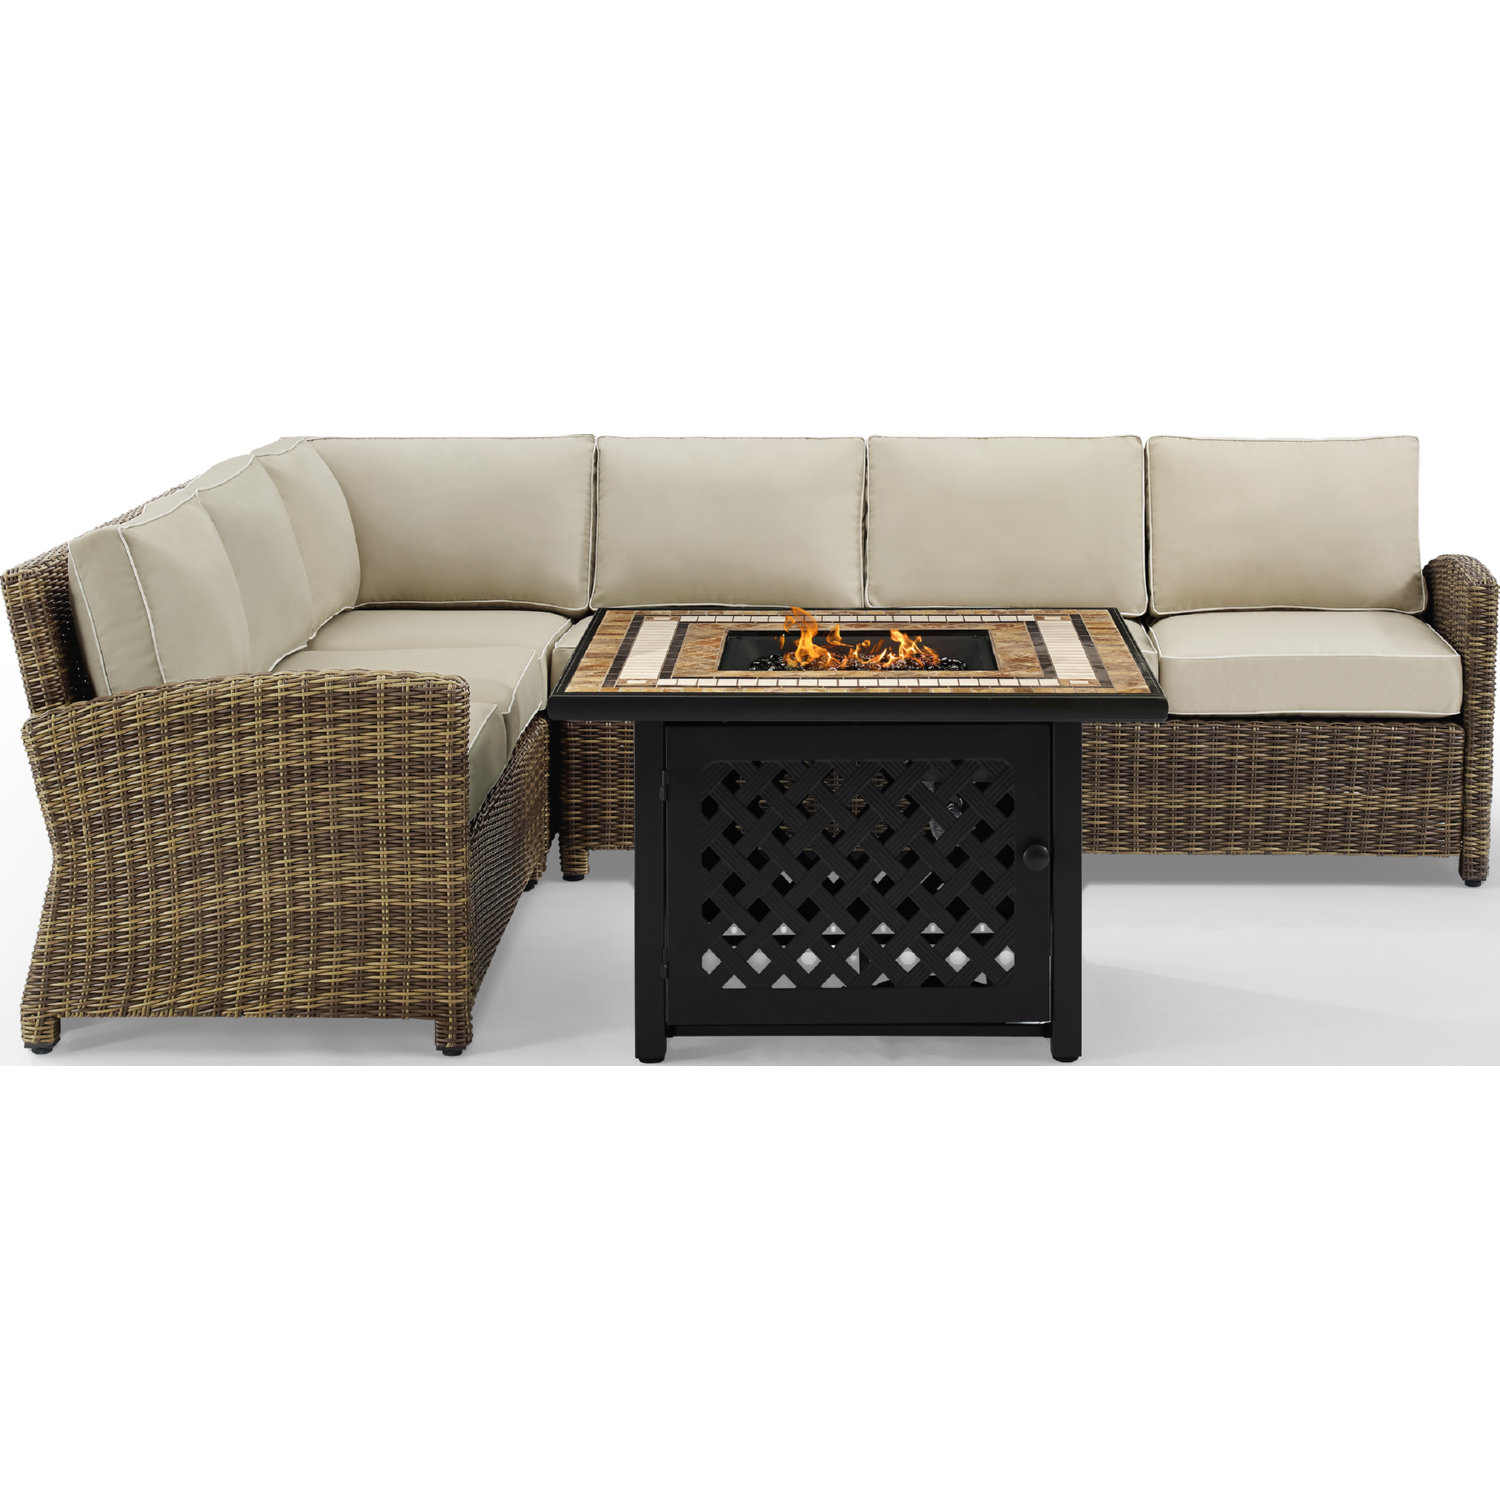 Bradenton 5 Piece Outdoor Sectional Sofa Set in PE Wicker w/ Sand Cushions  by Crosley